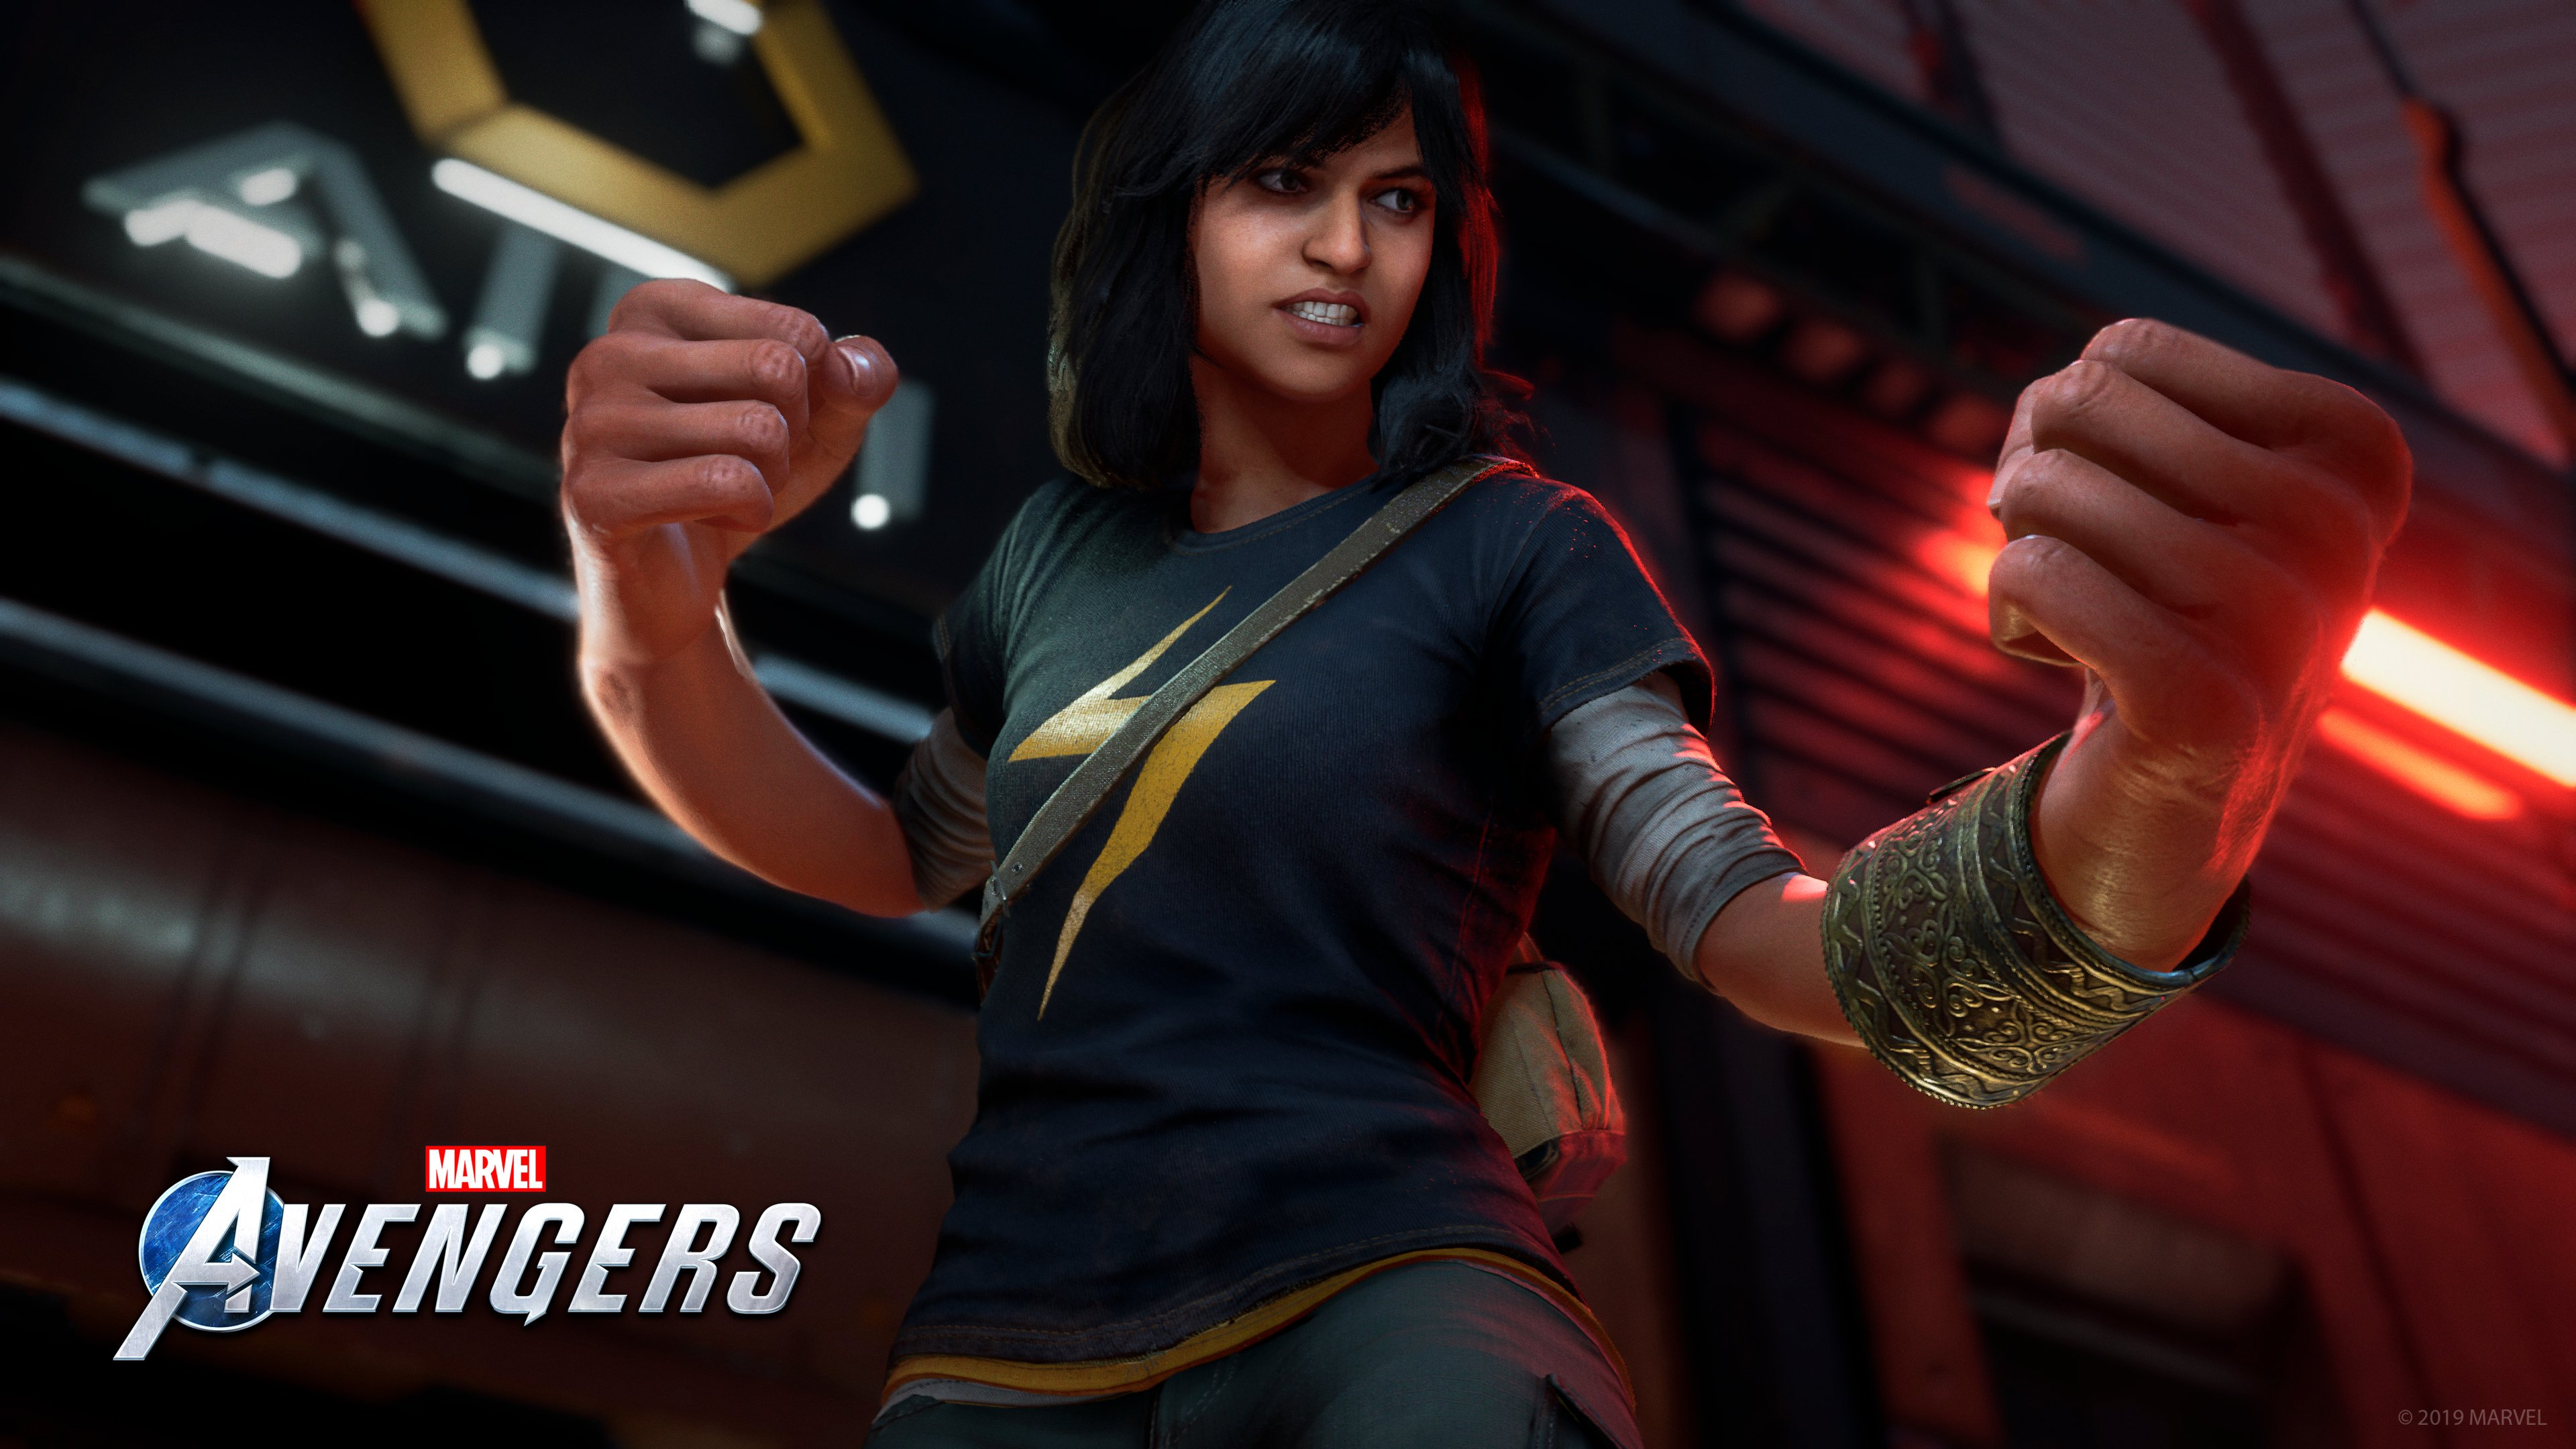 Ms. Marvel will be playable in 'Marvel's The Avengers' video game